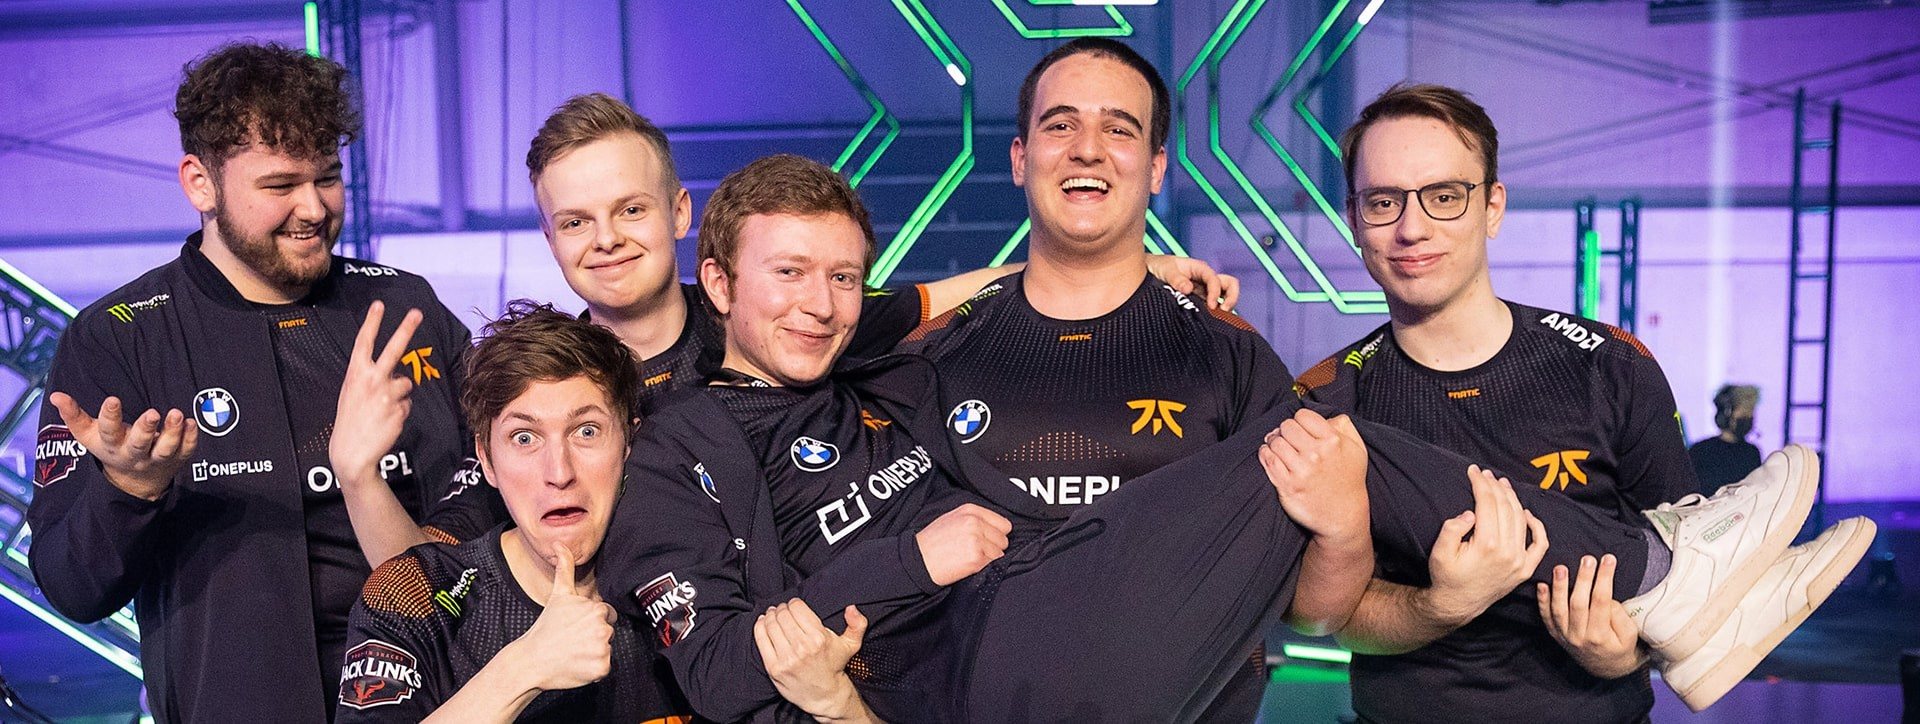 FNATIC coach mini talks Sentinels, atmosphere and mixed backgrounds